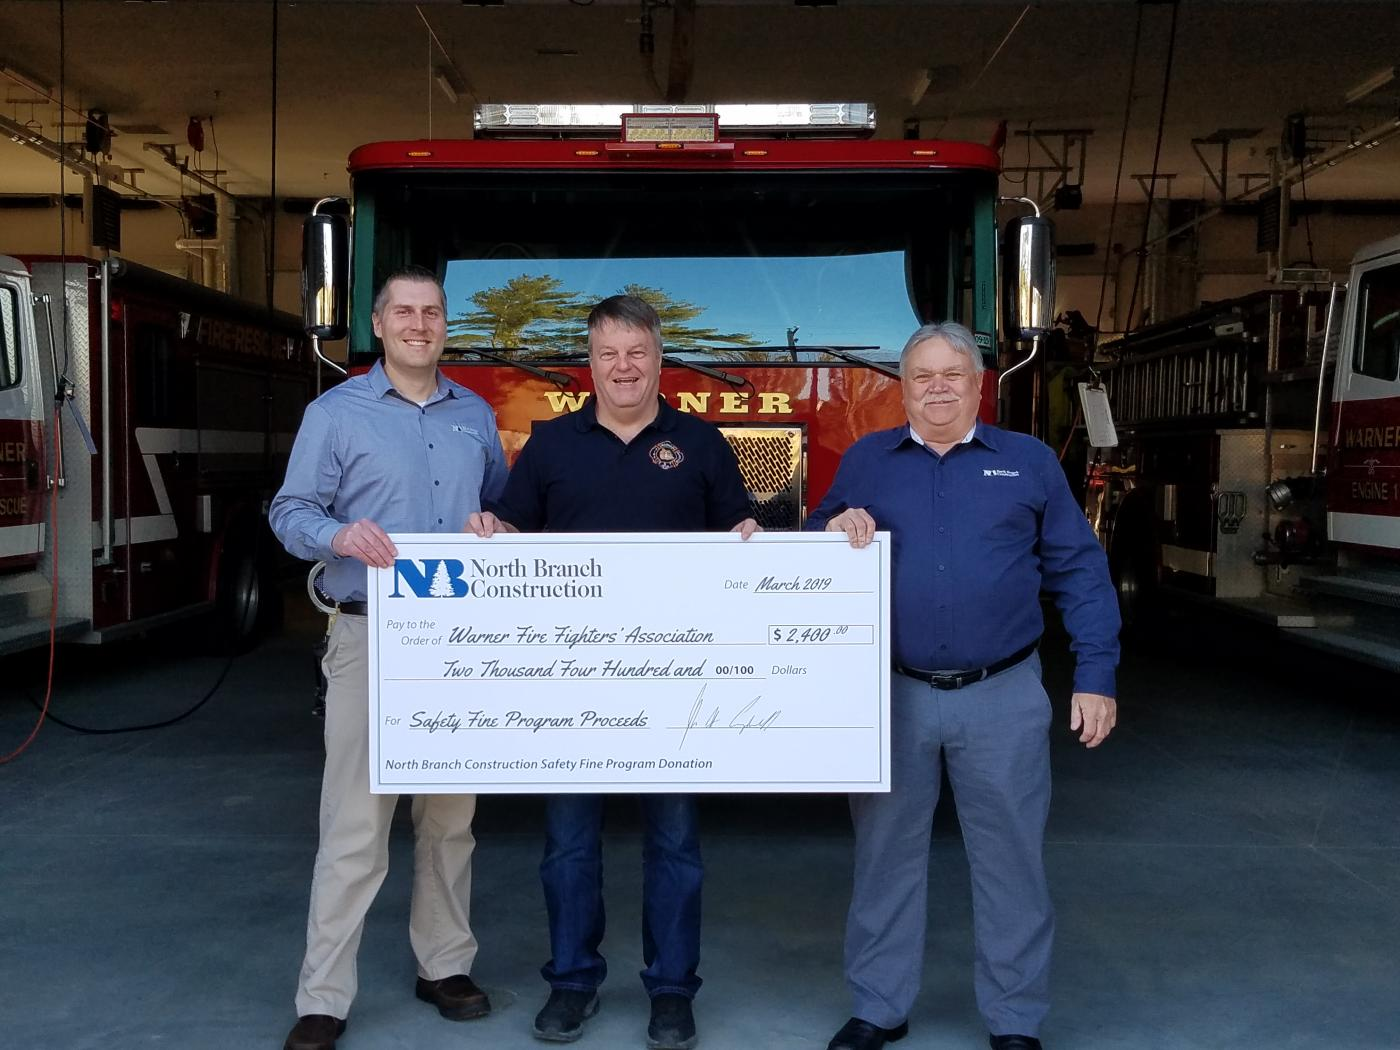 North Branch Construction Presents Safety Fine Program Proceeds at Recently-Completed Warner Fire Station